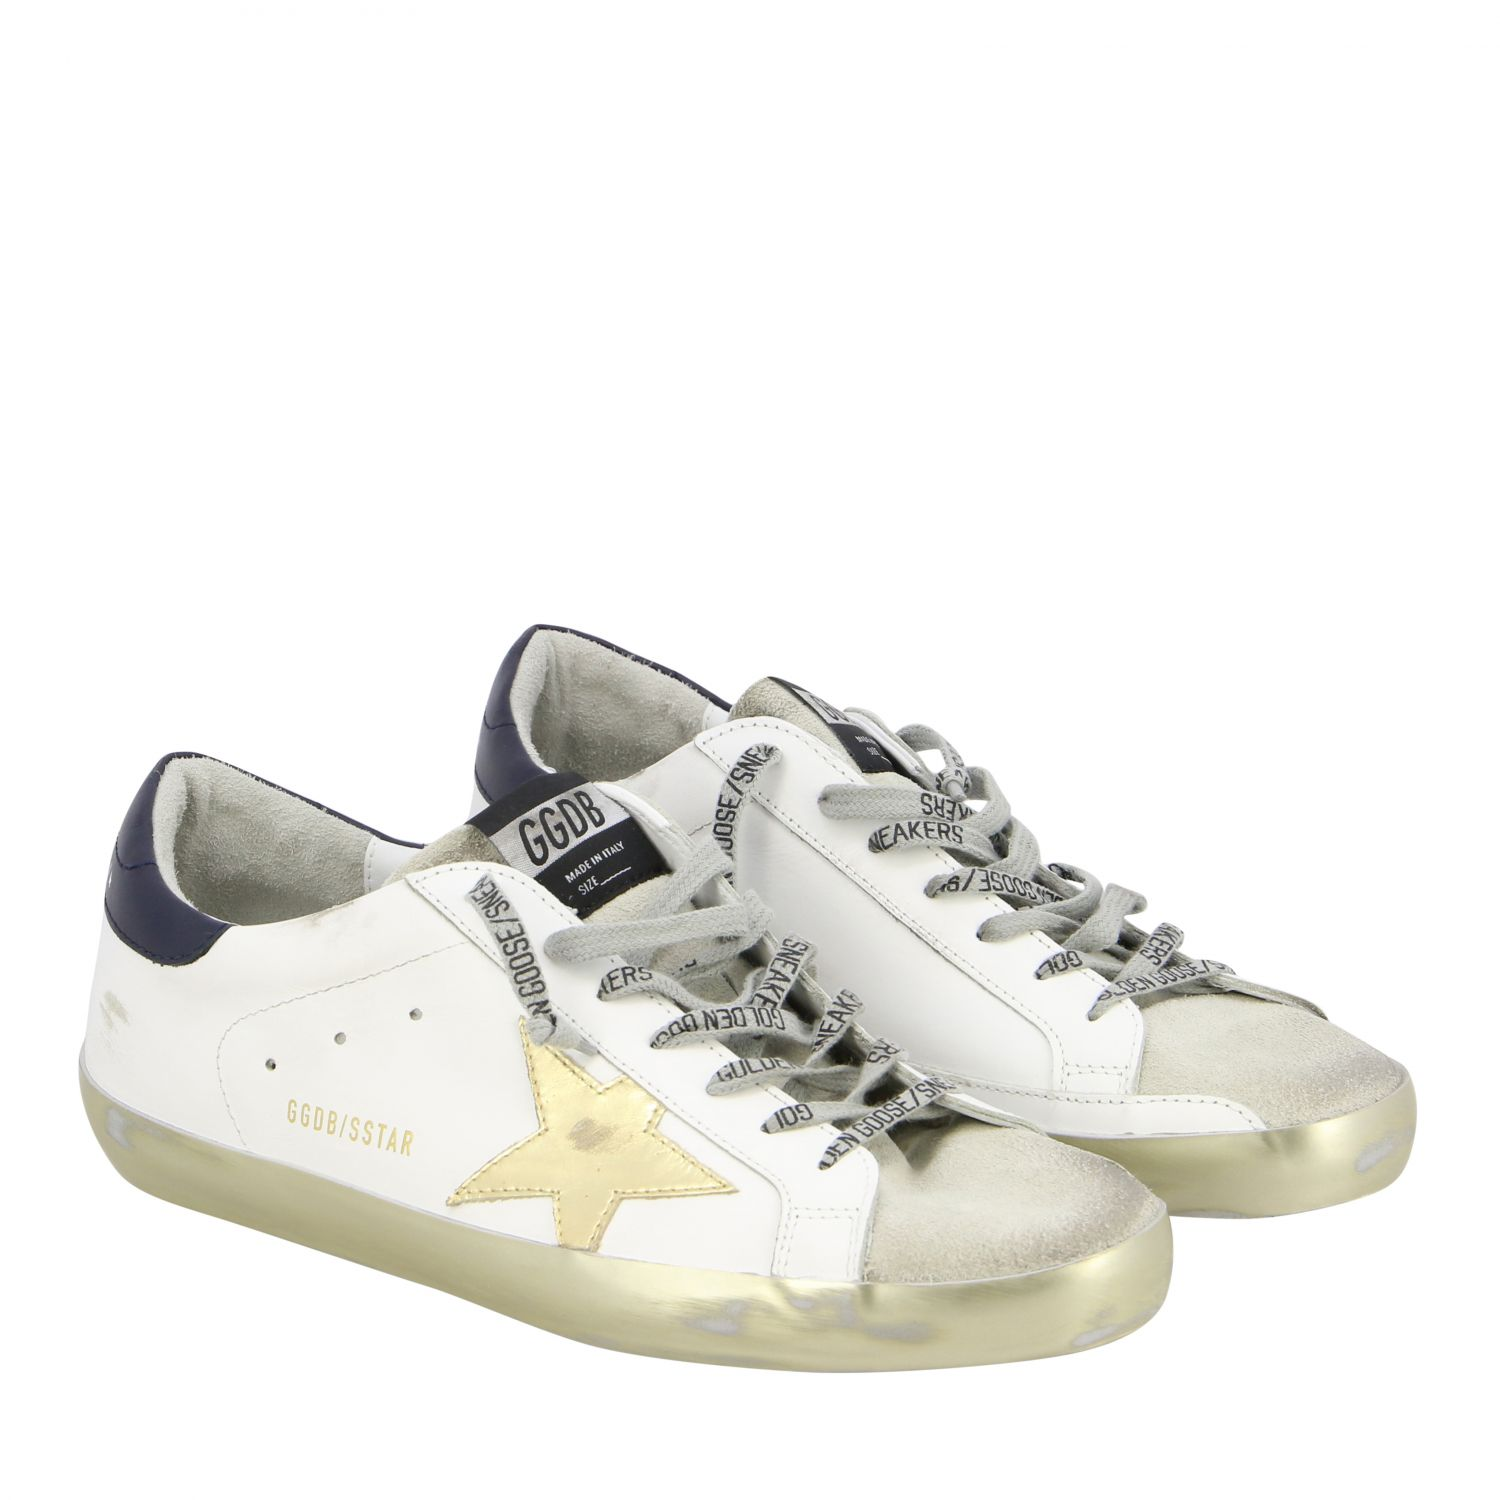 Sneakers Superstar Golden Goose in pelle con stella laminata bianco 2